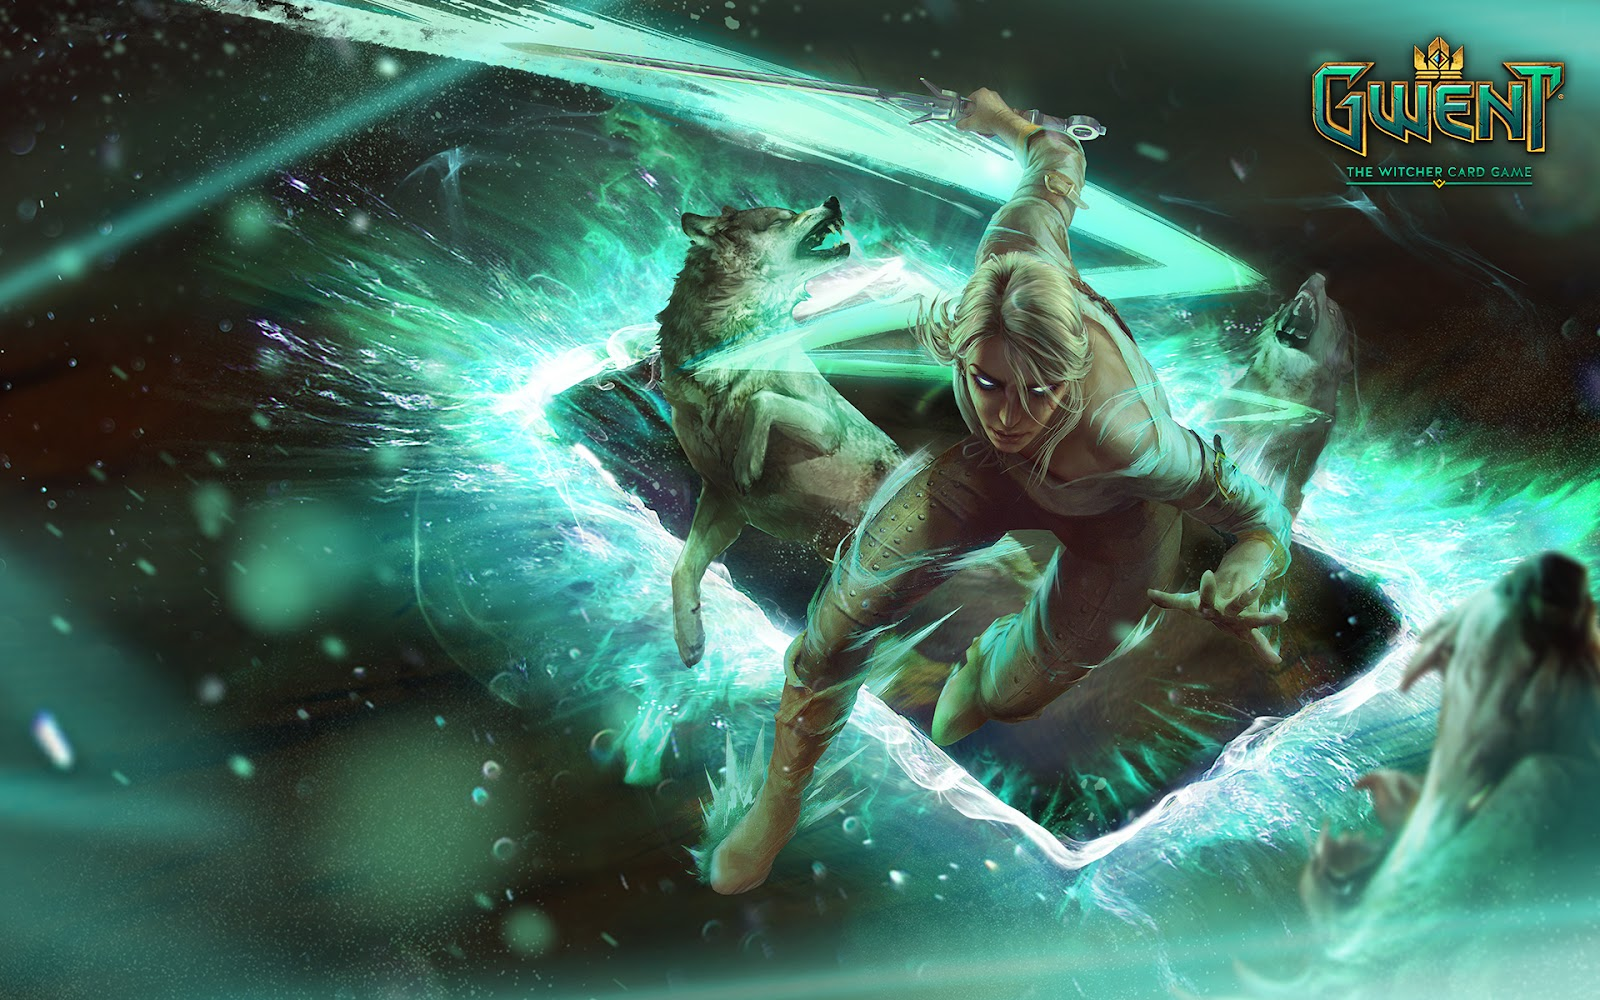 [Review] Gwent : The Witcher Card Game เกมการ์ดจากซีรีส์ The Witcher 21